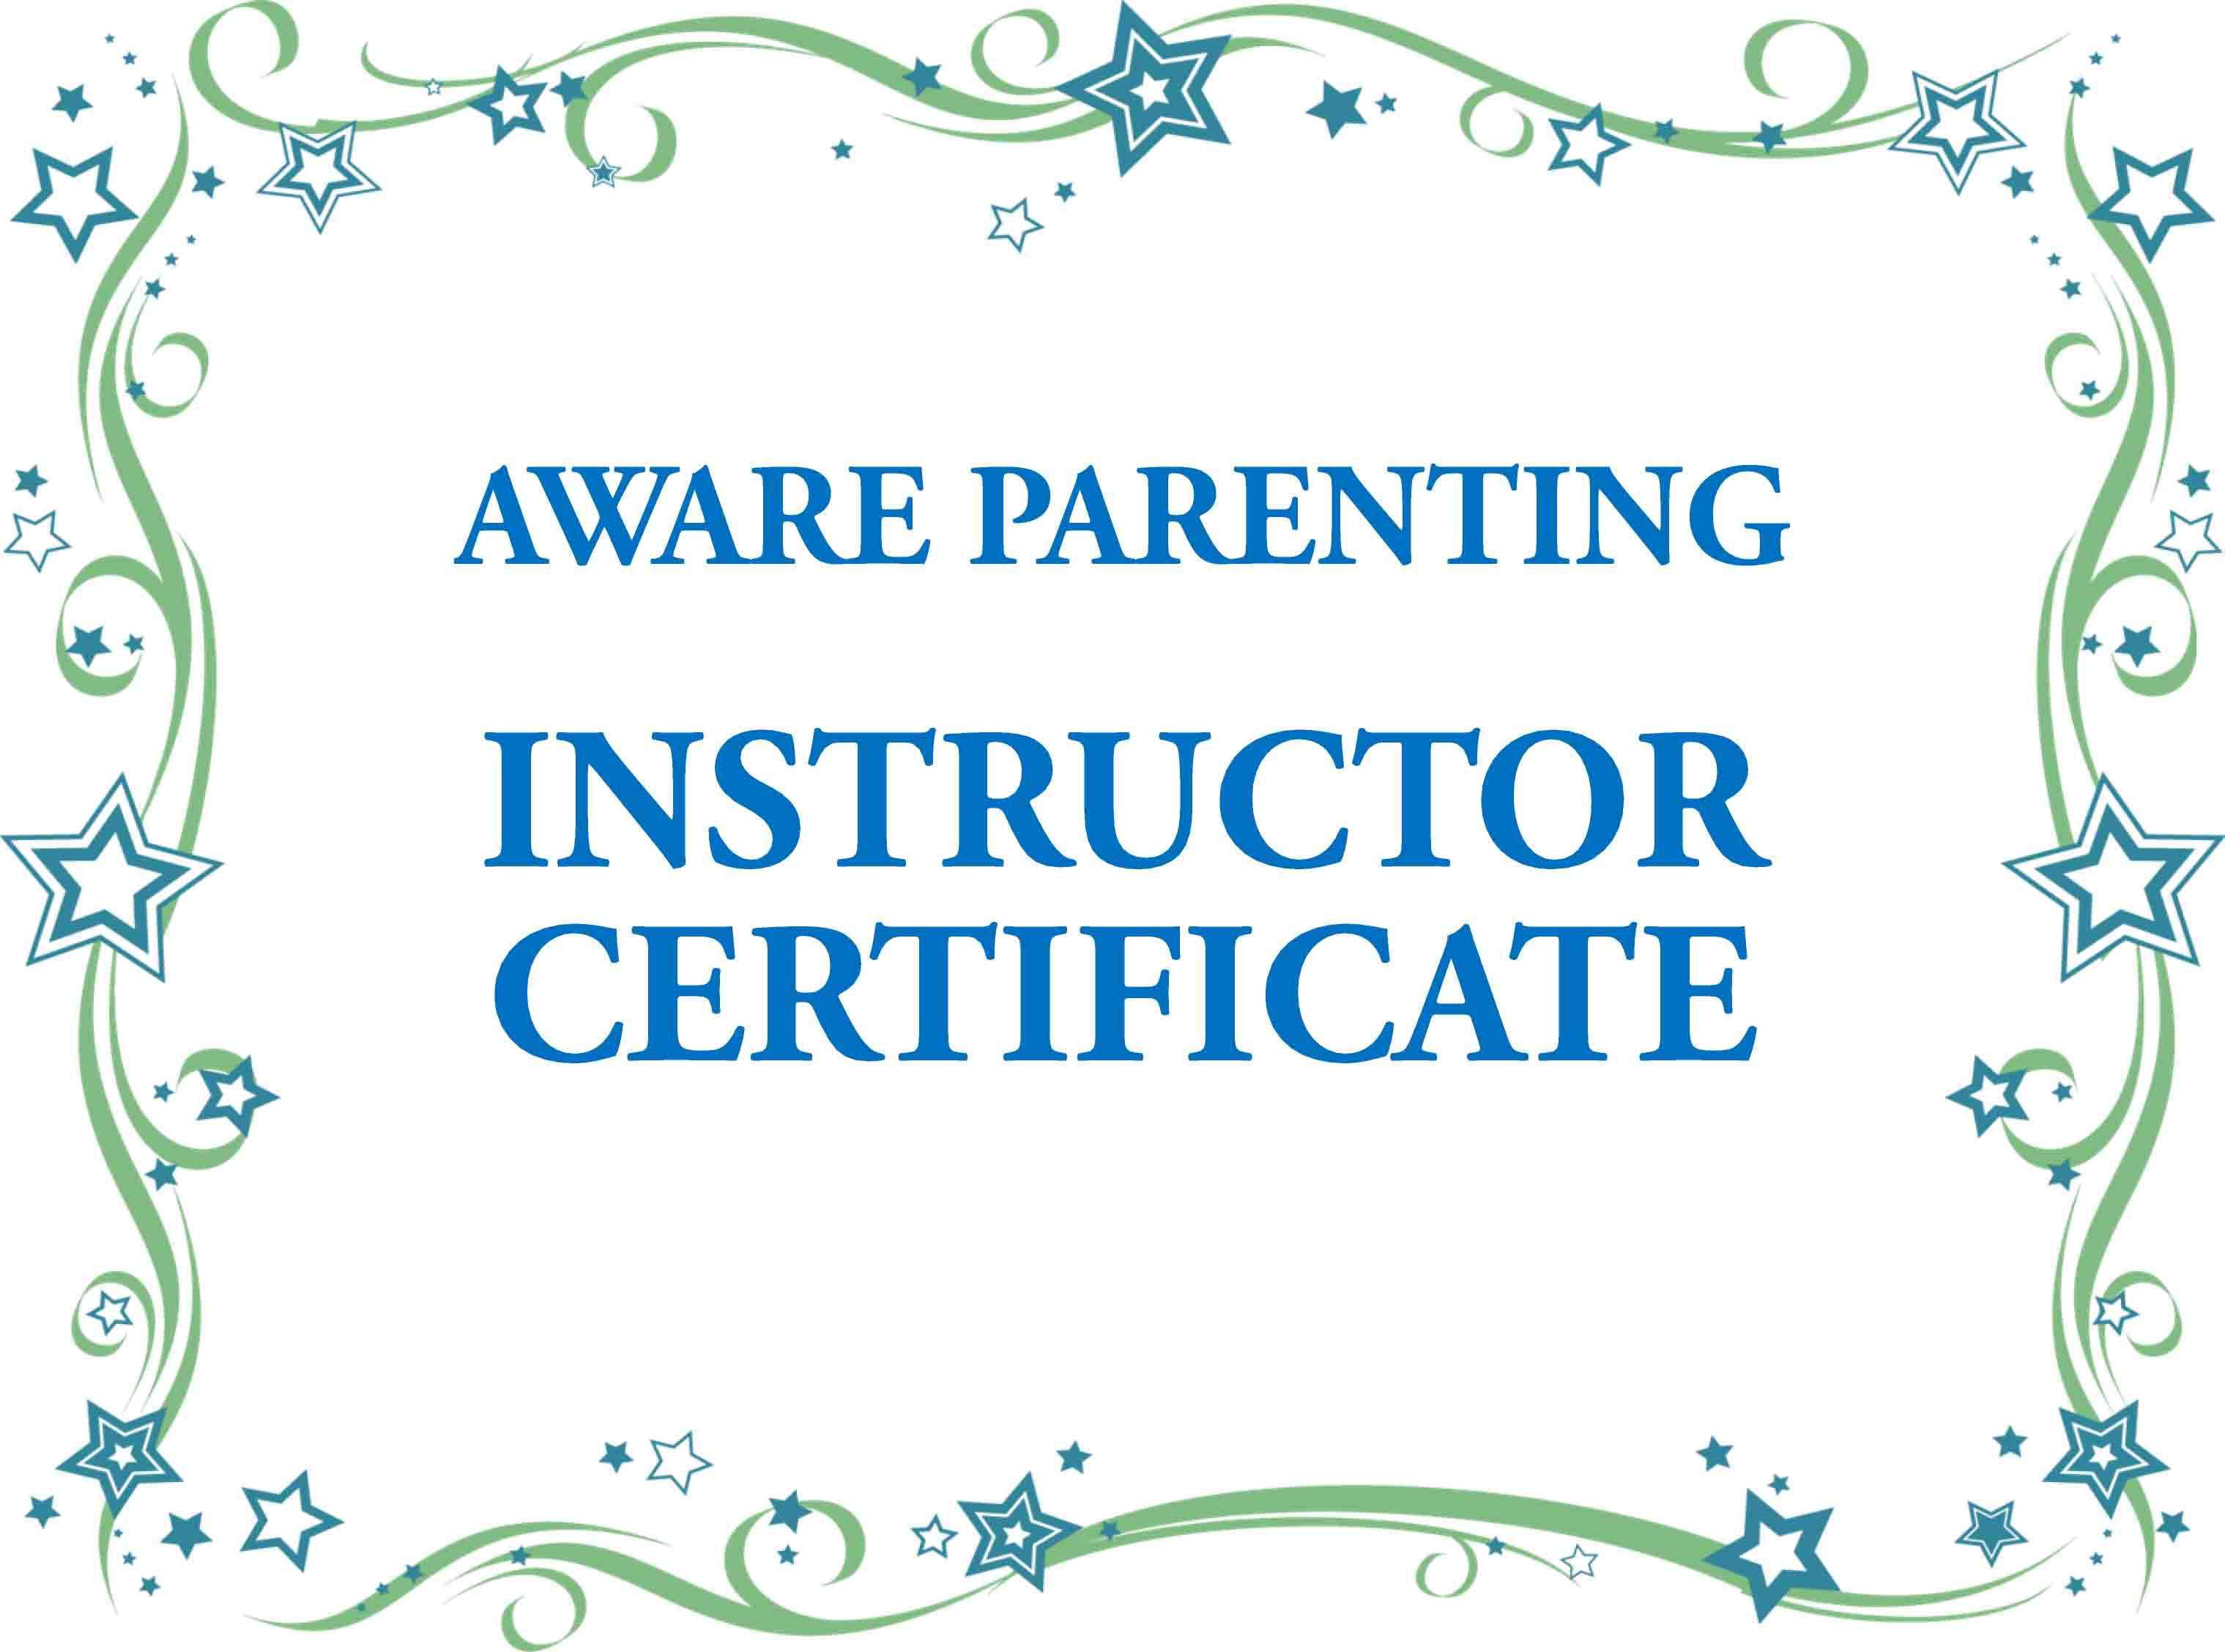 Certification Requirements For Aware Parenting Instructors